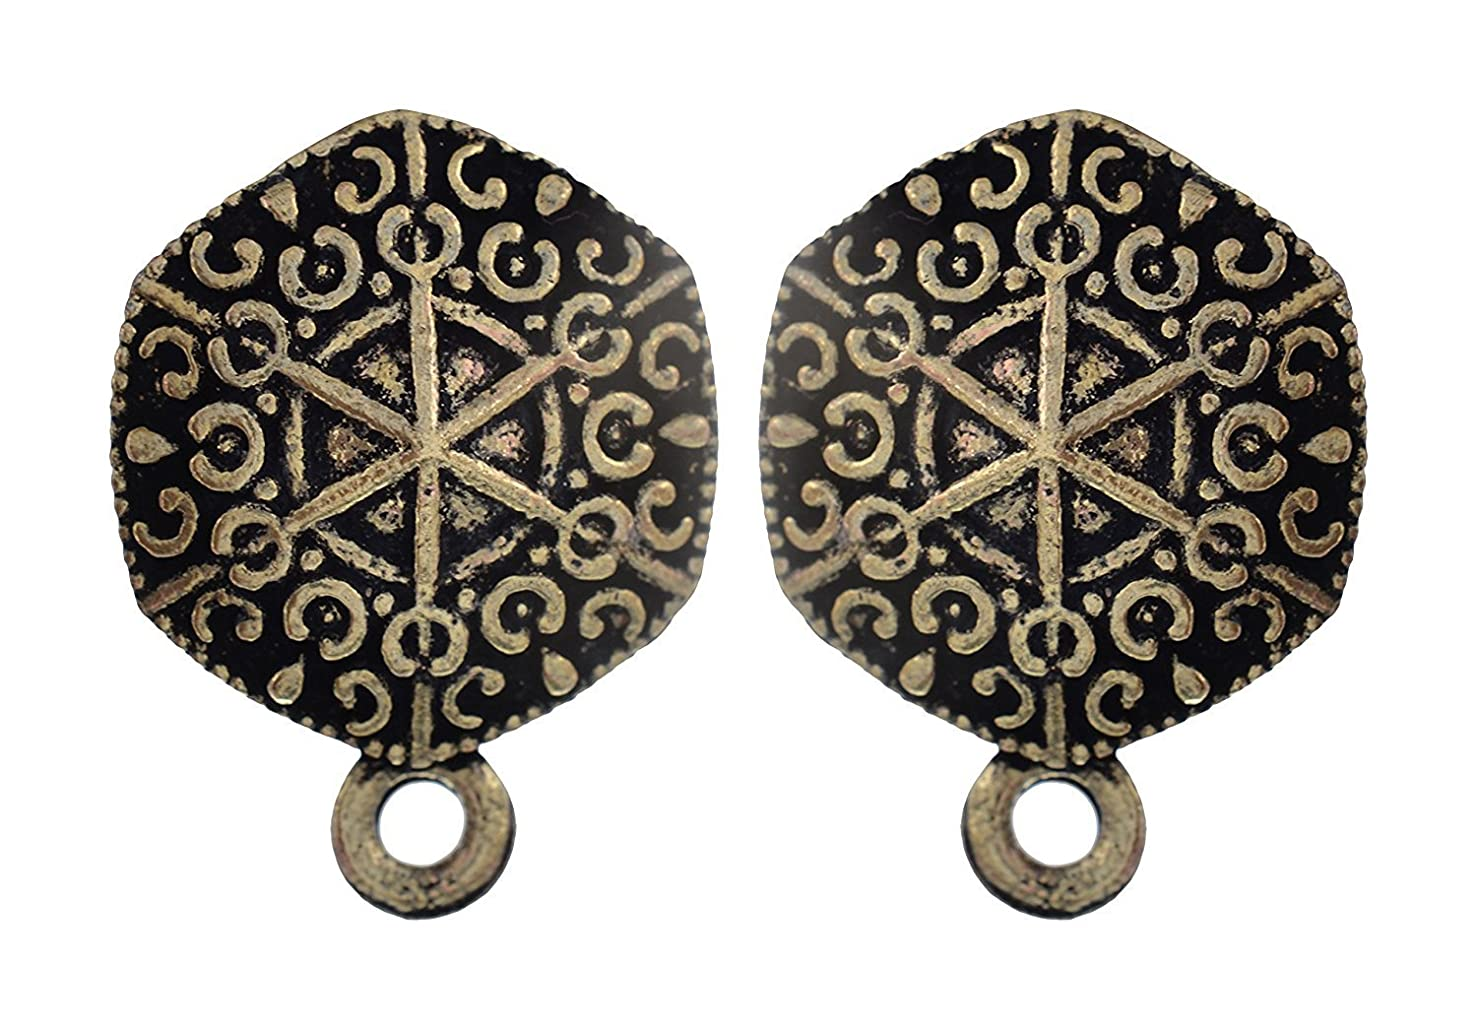 GOELX Antique Studs for Ear-Rings & Jewellery Design 18